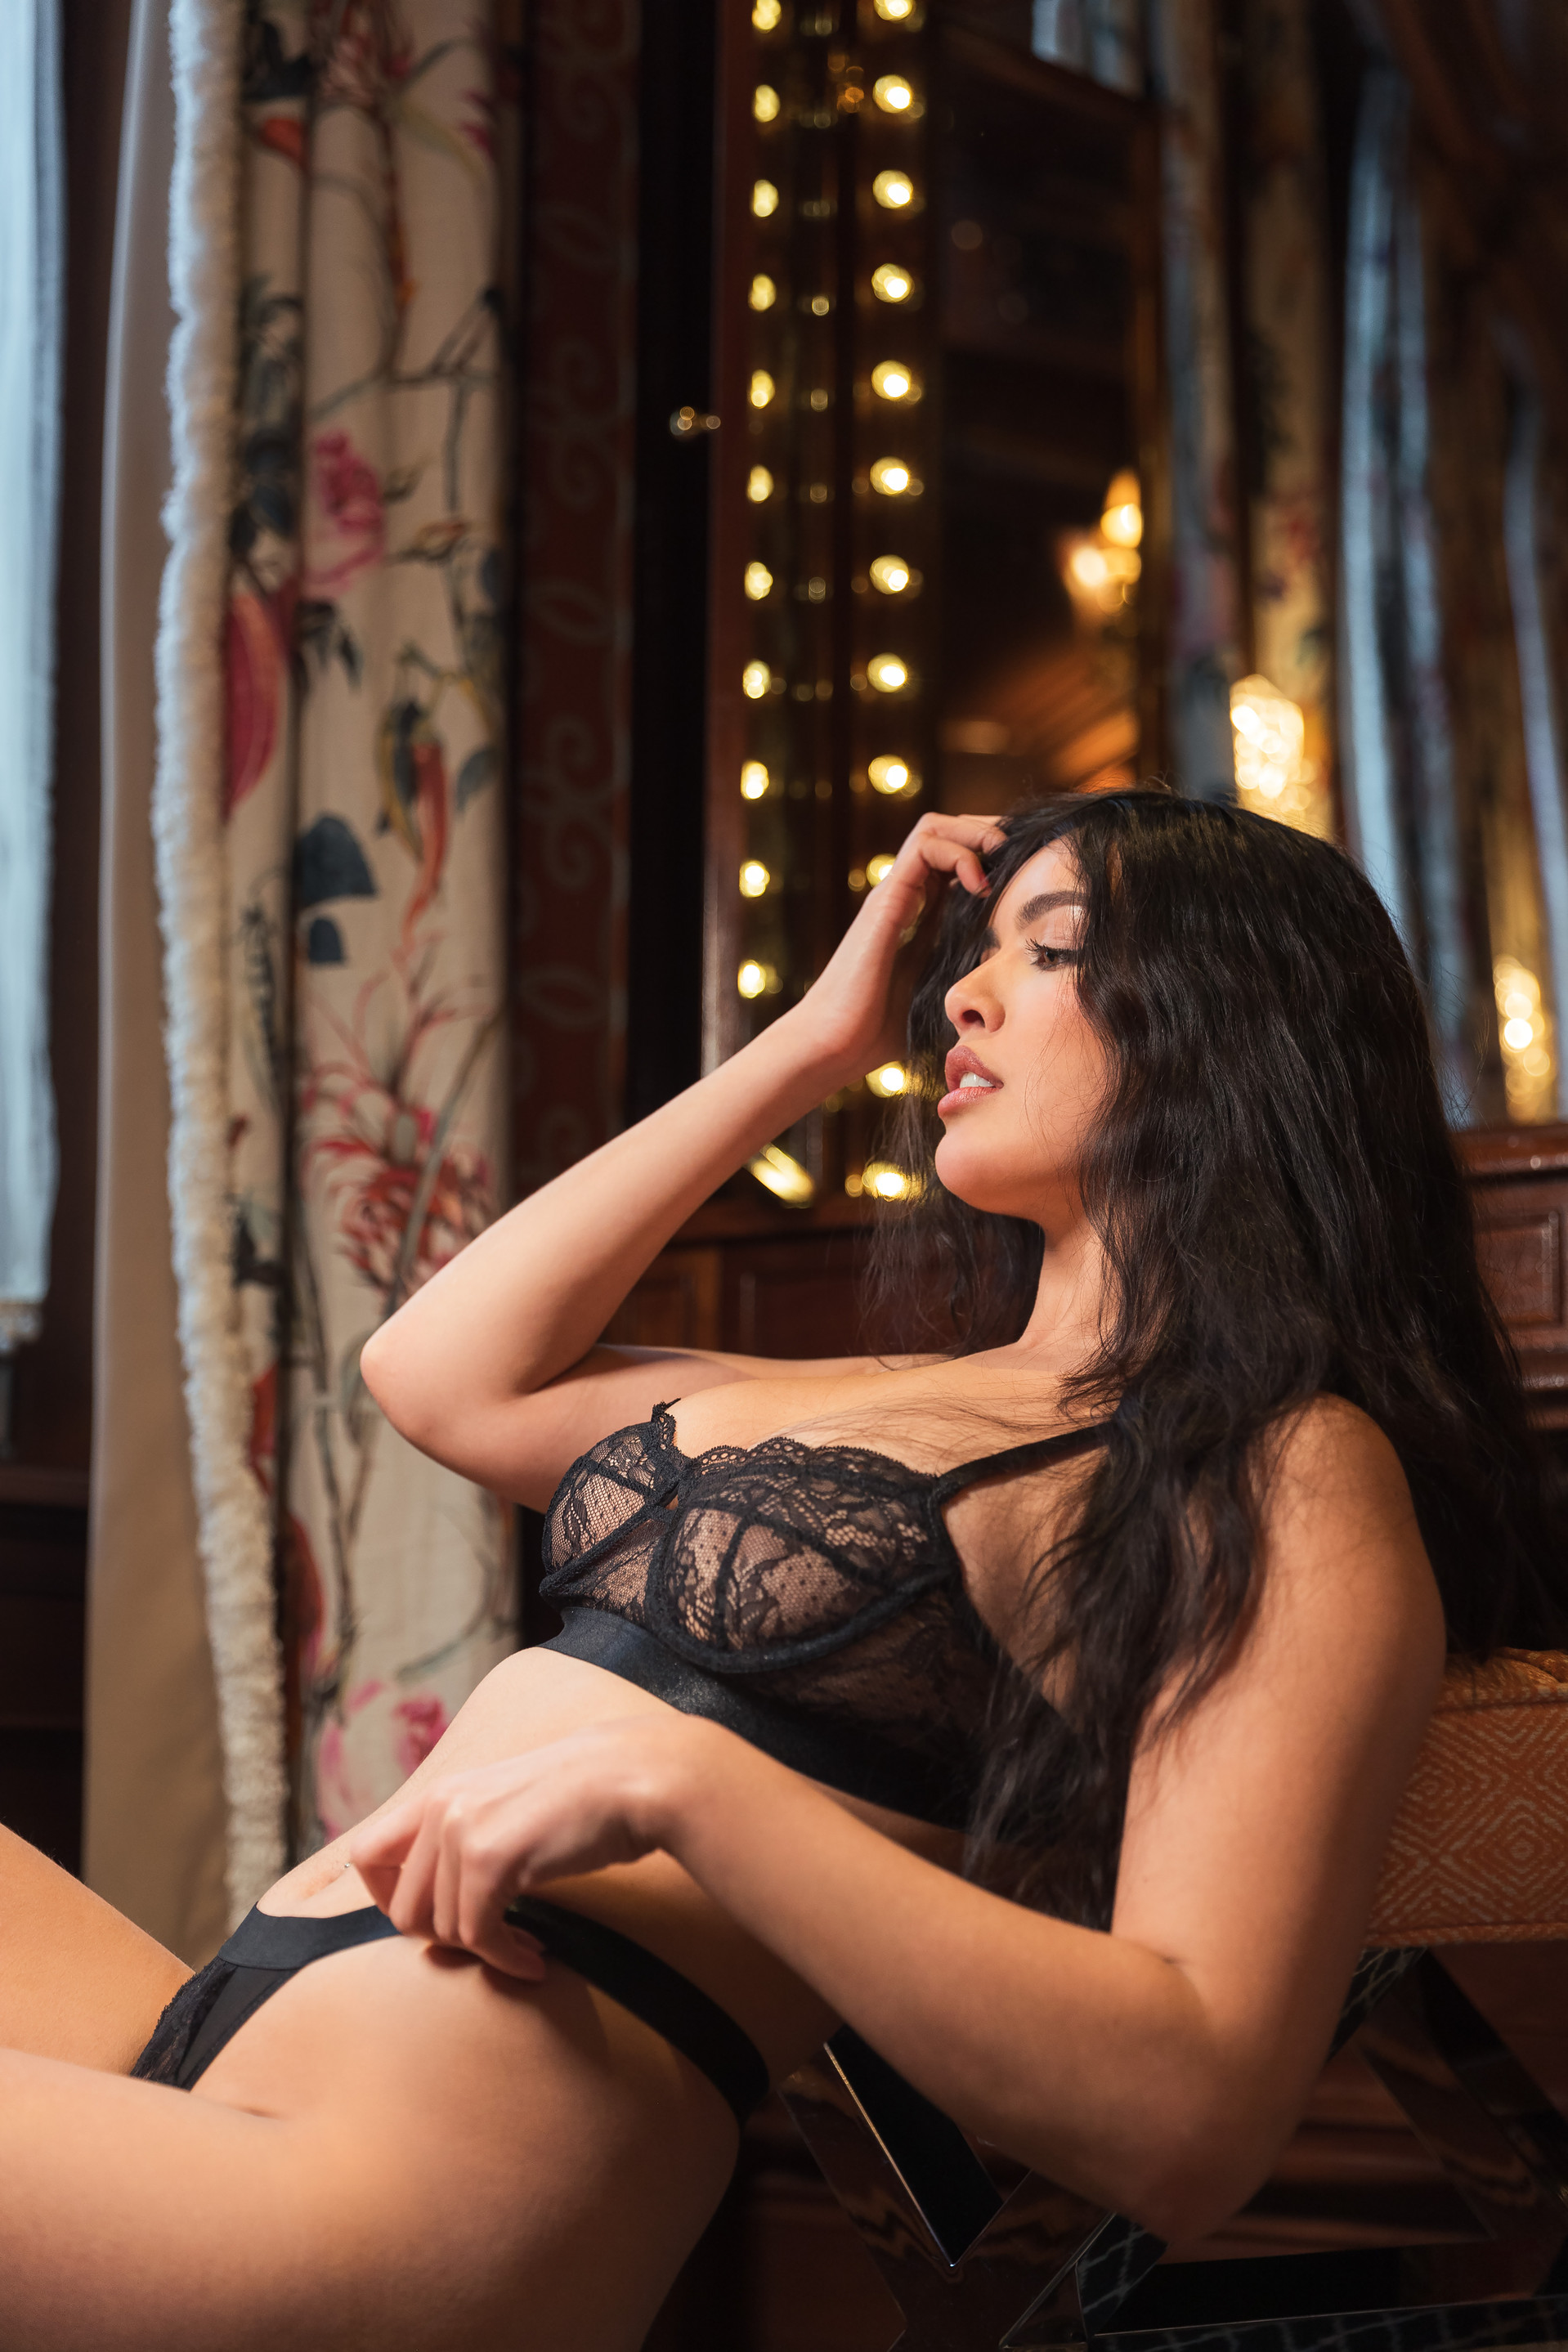 20210209 - MISBEHAVE - Shelly 009.jpg